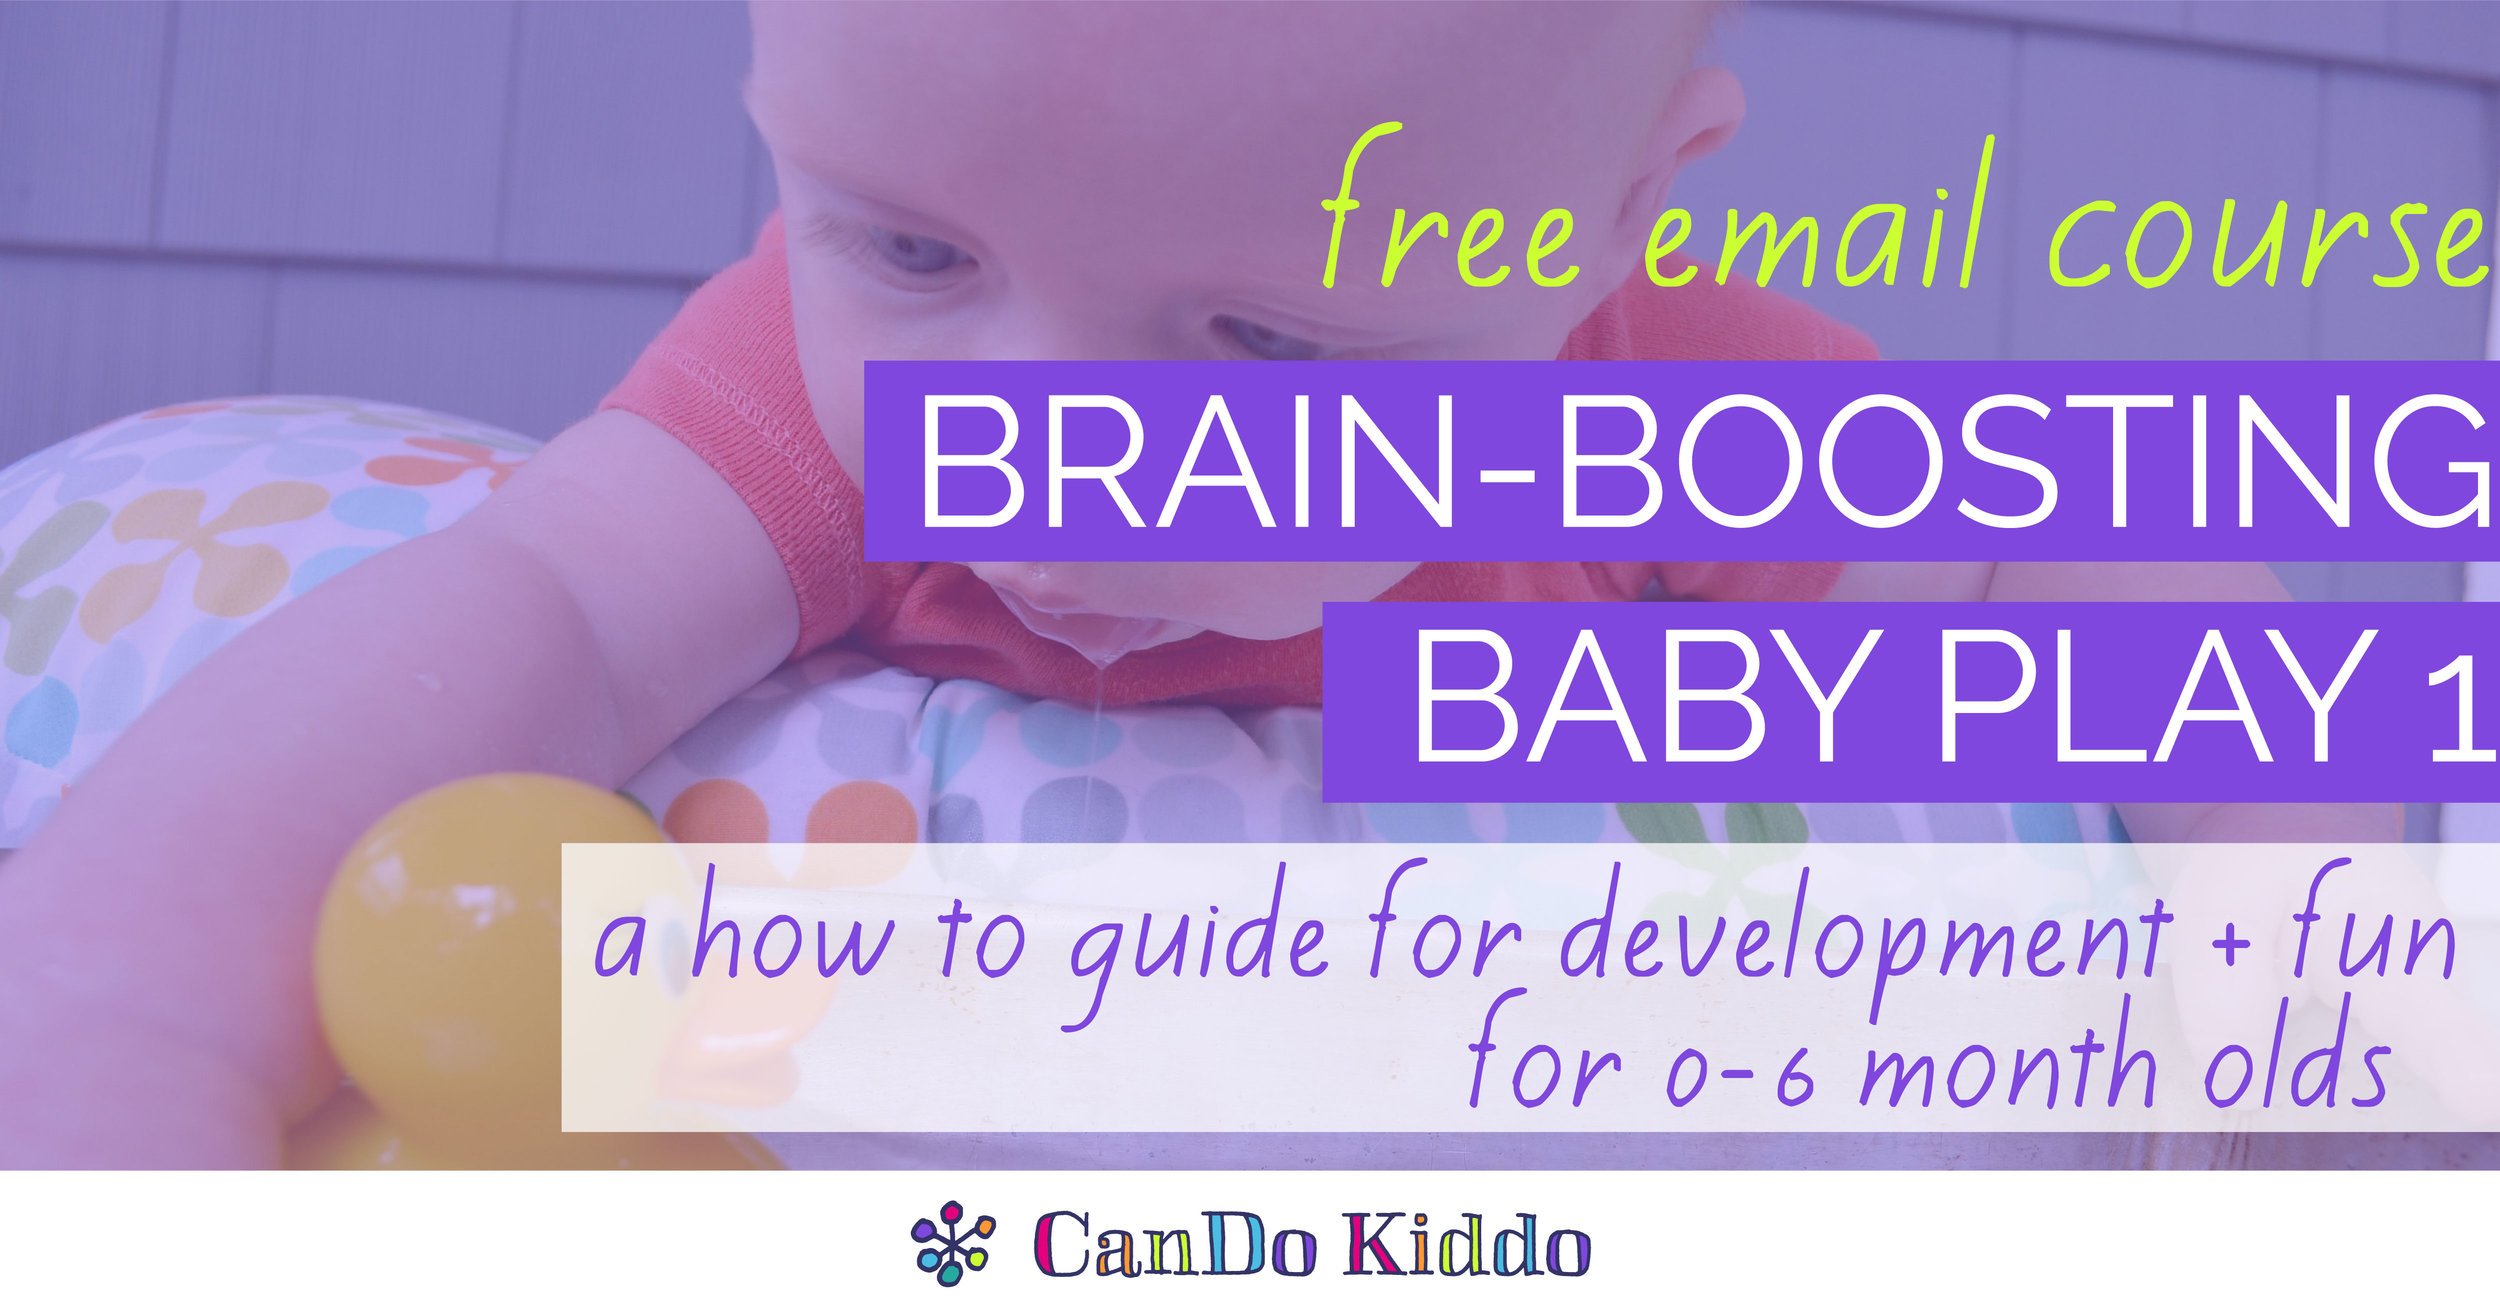 Baby play free email course